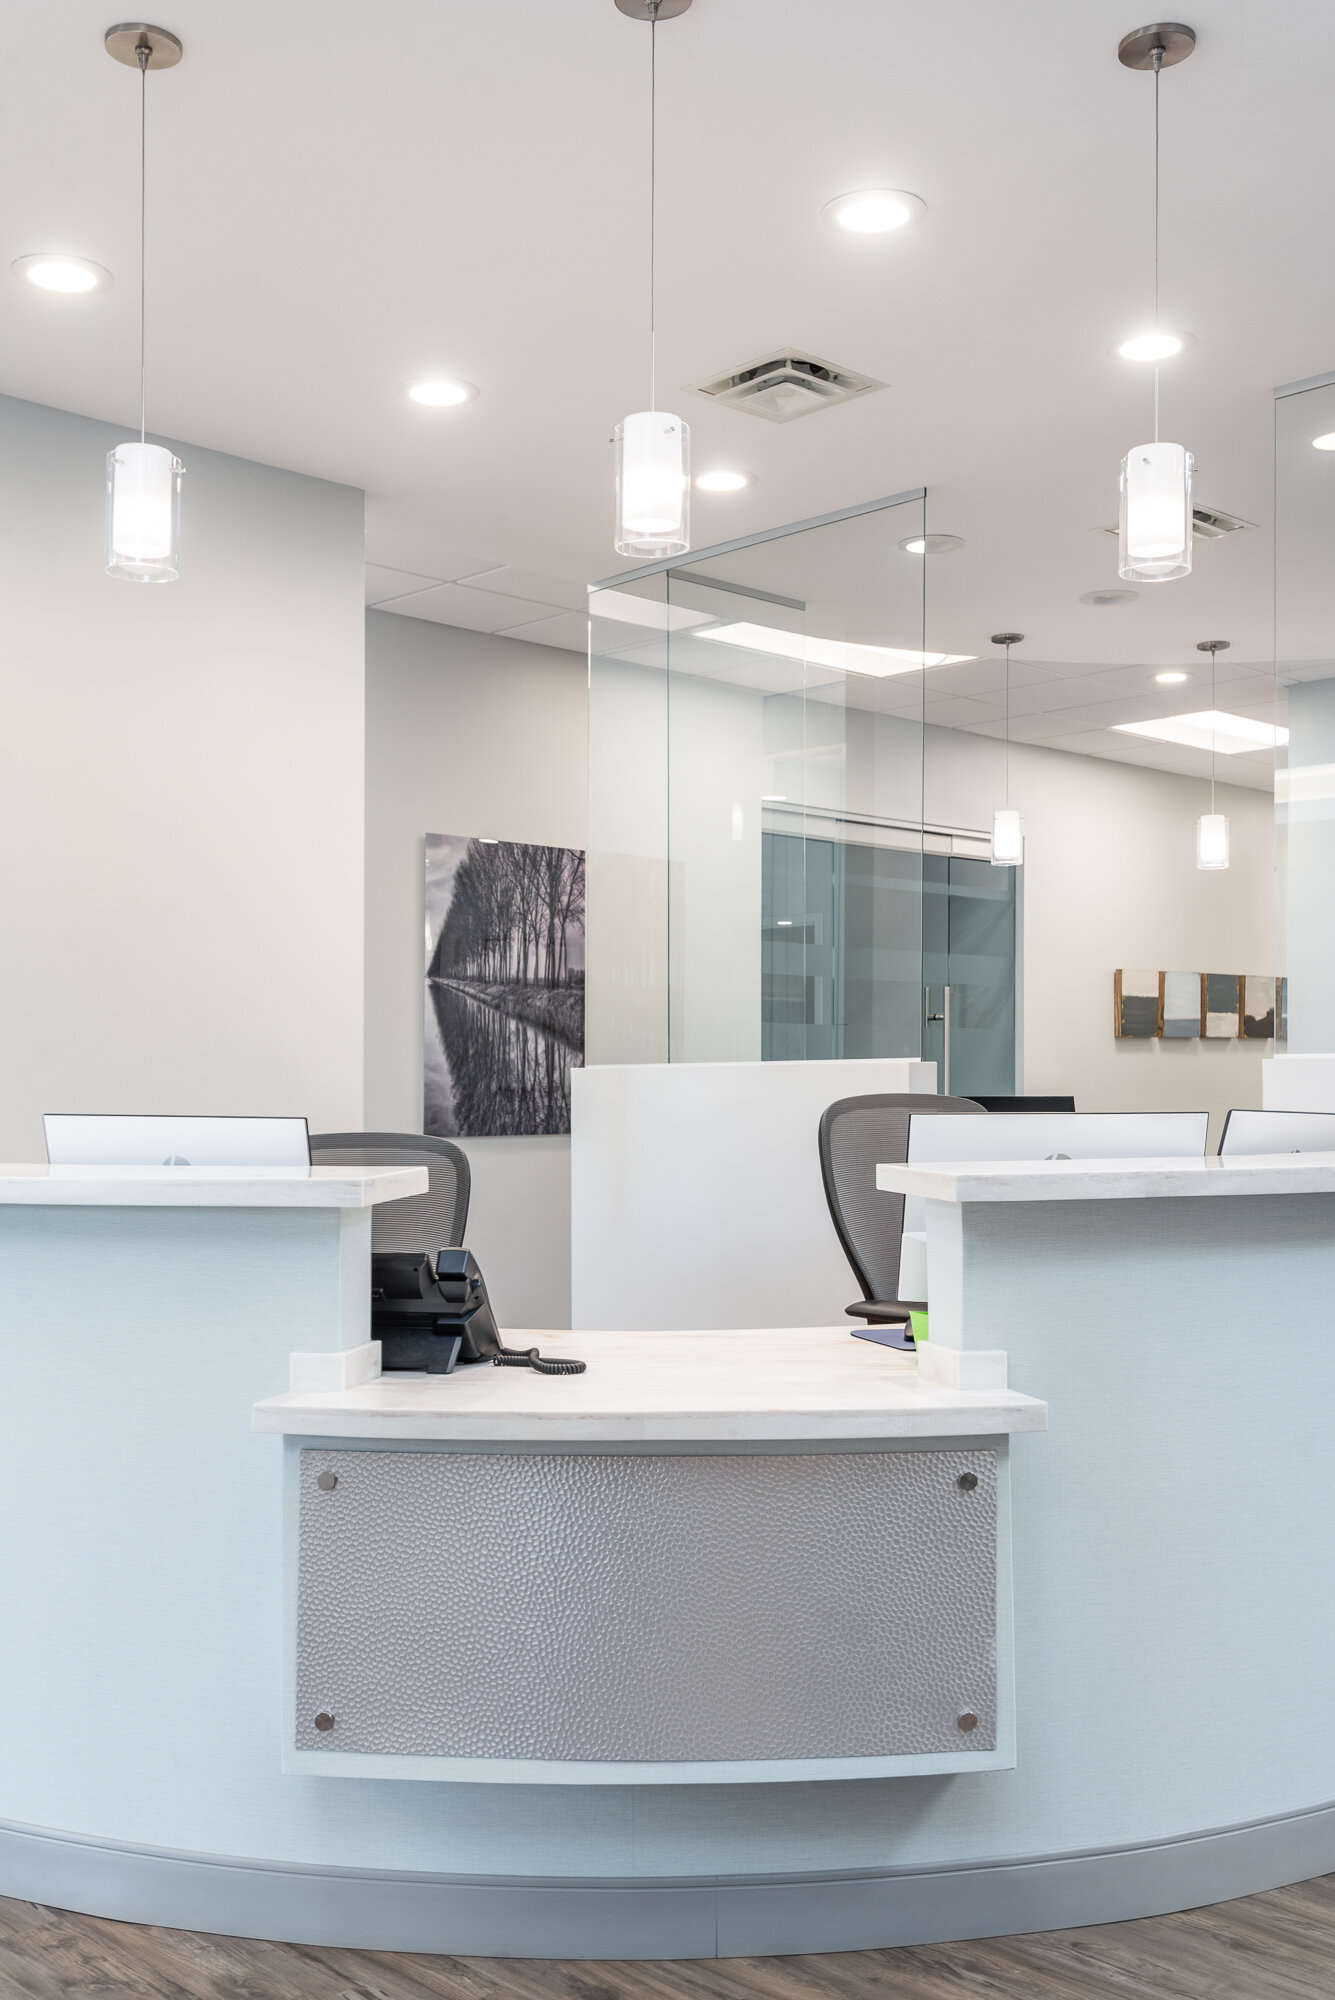 Micamy Design Studio_Interior Design_Faben Obstetrics and Gynelcology_North Florida_Riverplace_San Marco_Healthcare_Office_Medical_Trwobridge_Reception_Patcraft_Waterfall_Entry (3).jpg